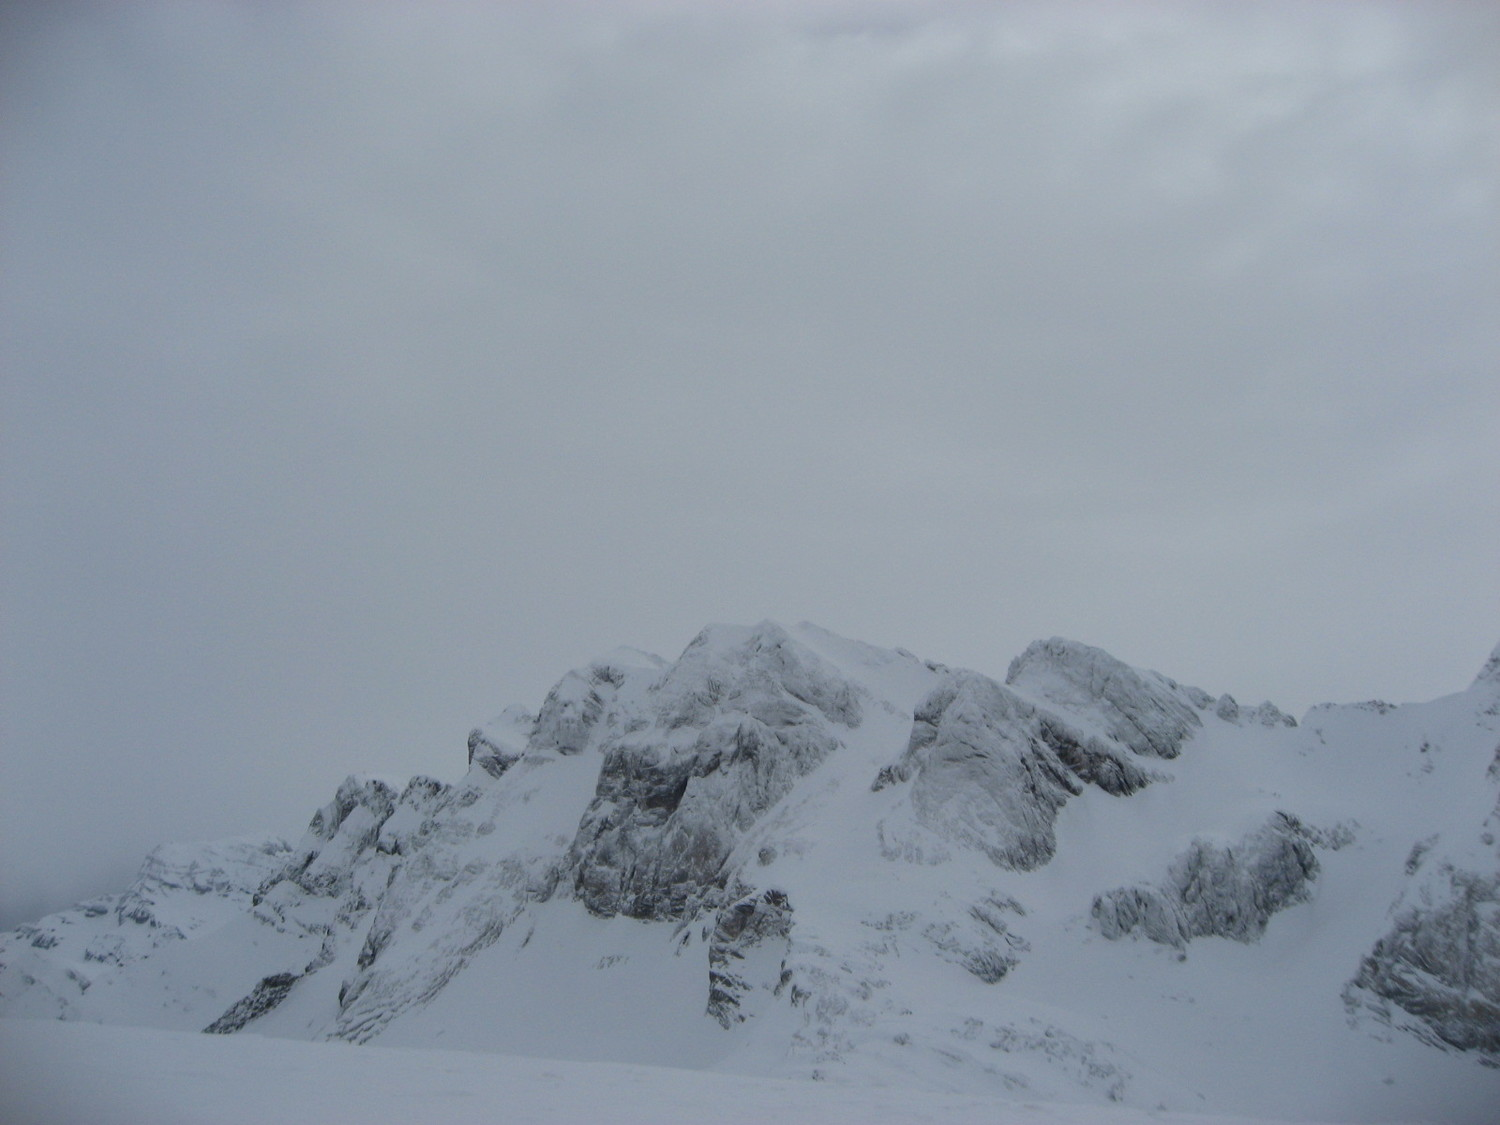 Dents Blanche